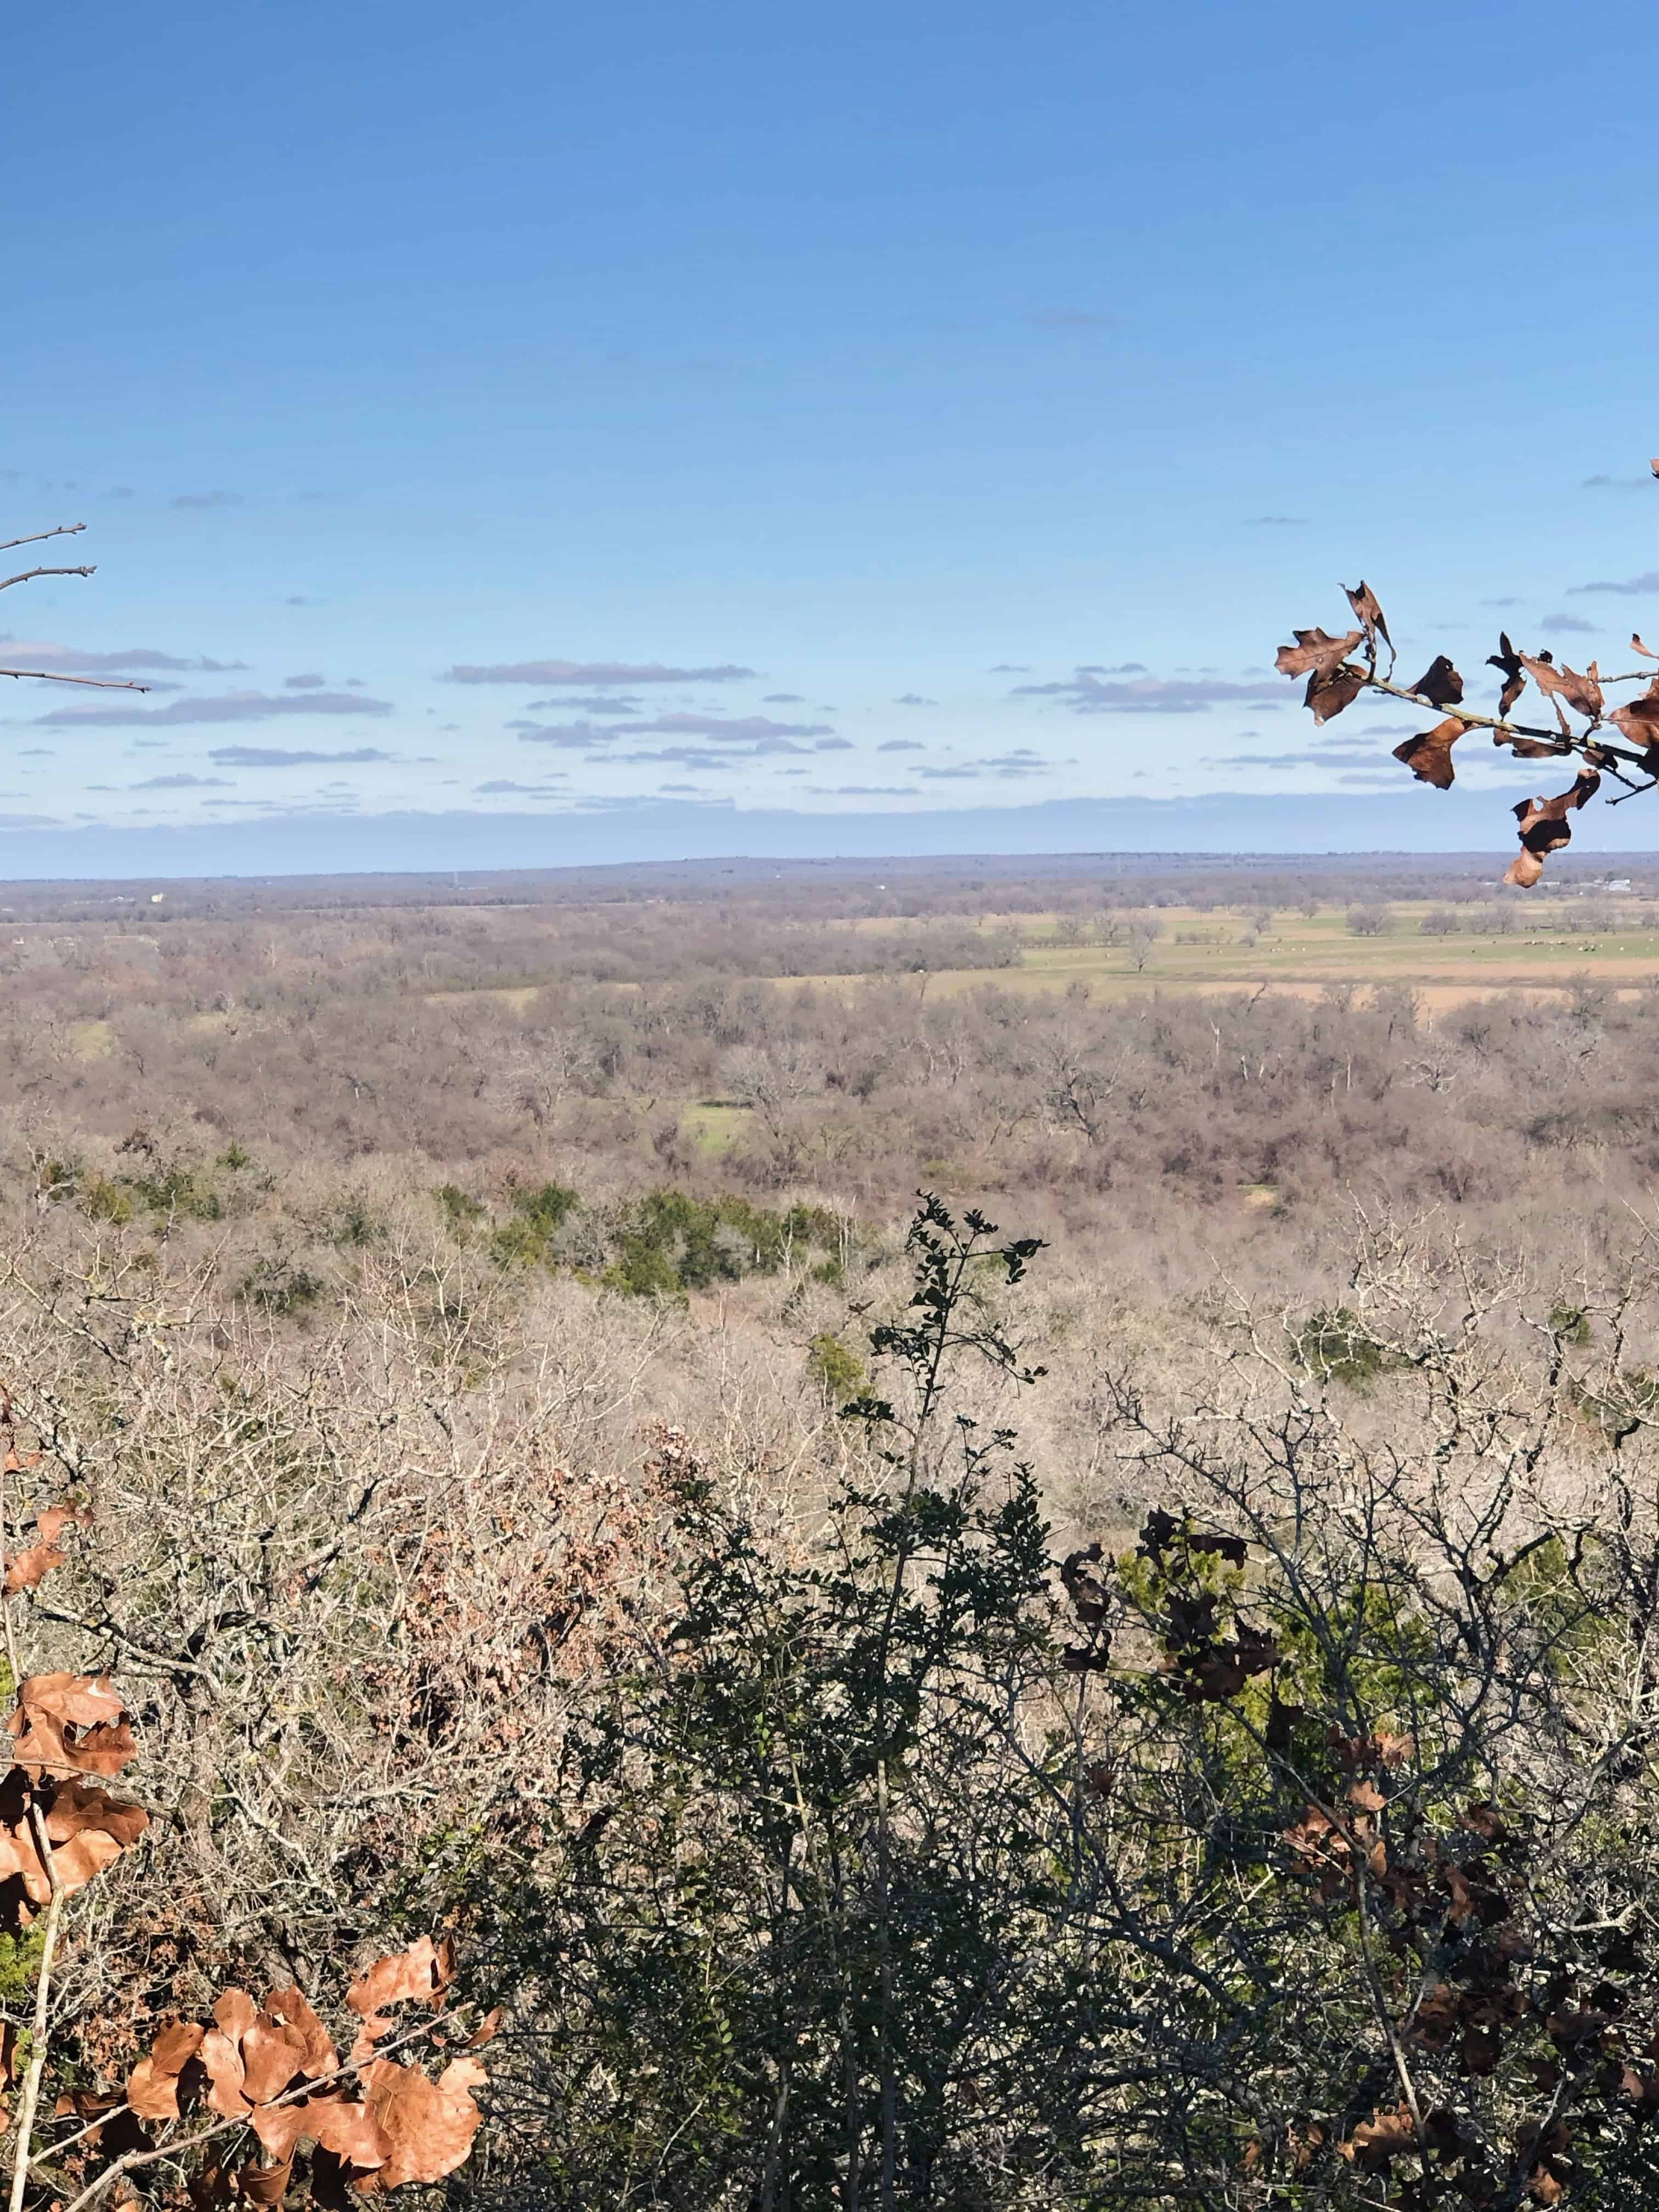 Bastrop is also a nice place to go for a hike. The McKinney Roughs Nature Park offers gorgeous view at the nature surrounding the city.